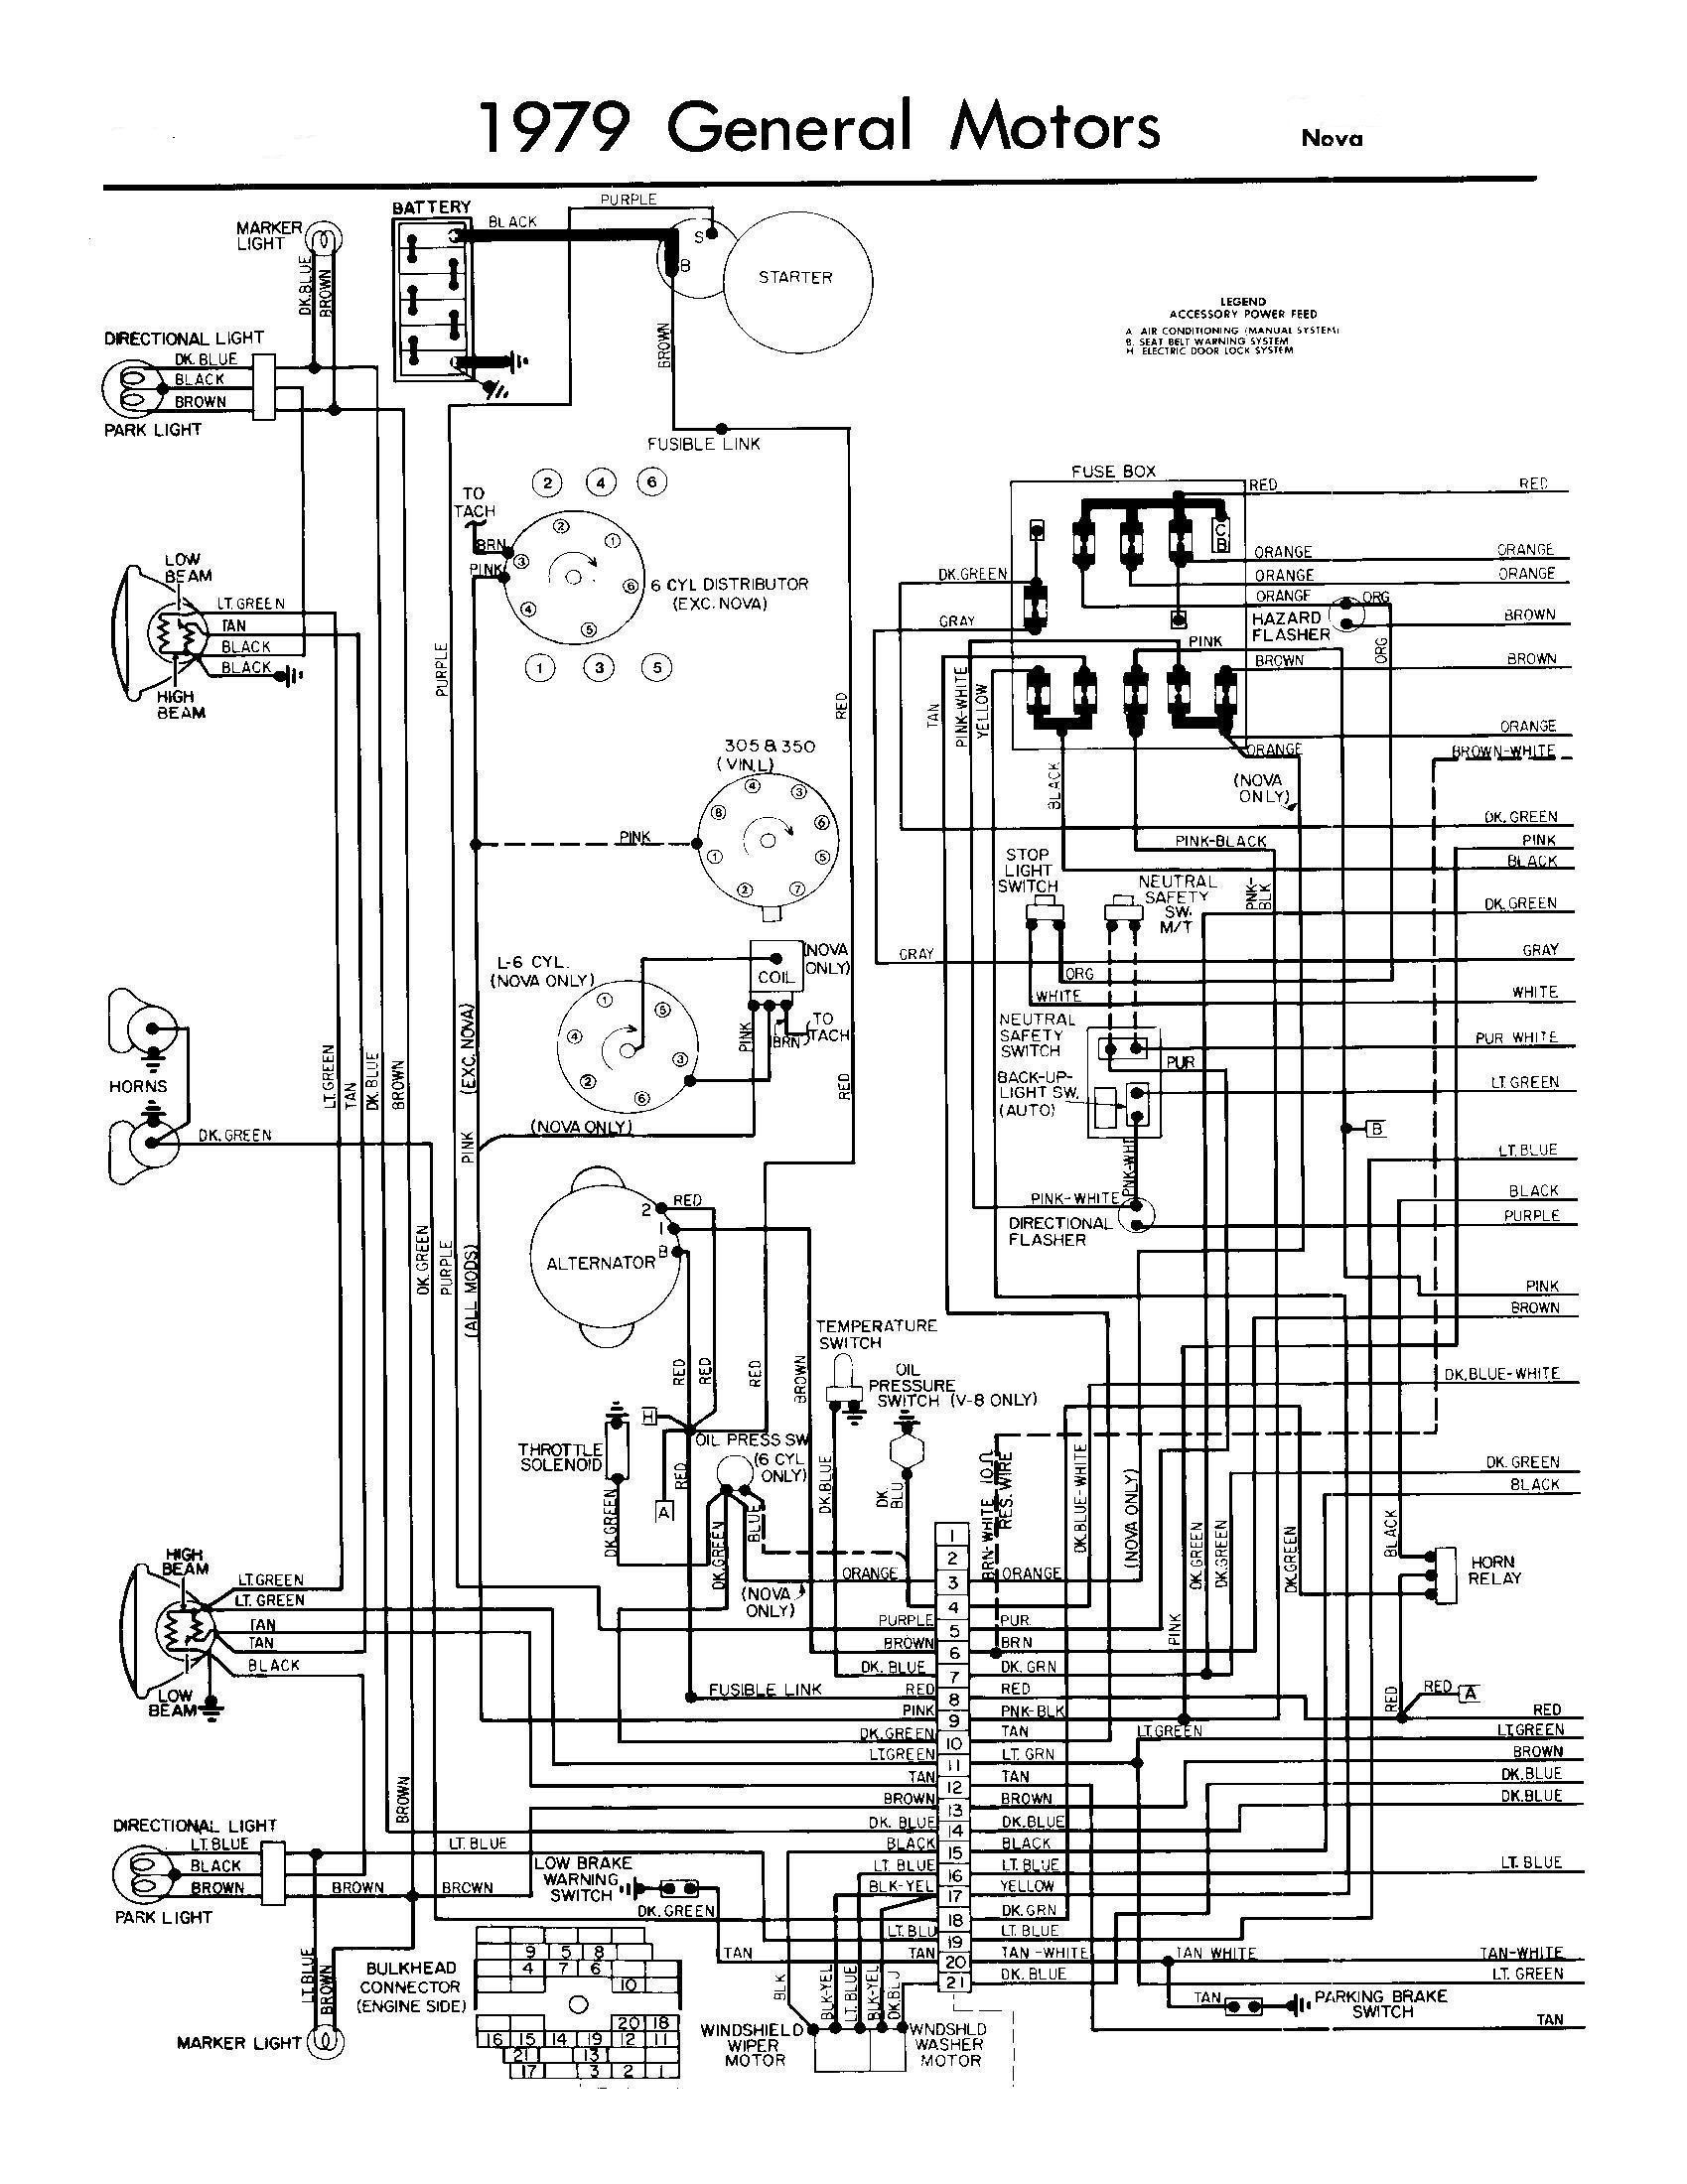 84 chevy steering column wiring diagram wiring diagram73 nova steering column wire diagram free download wiring diagram